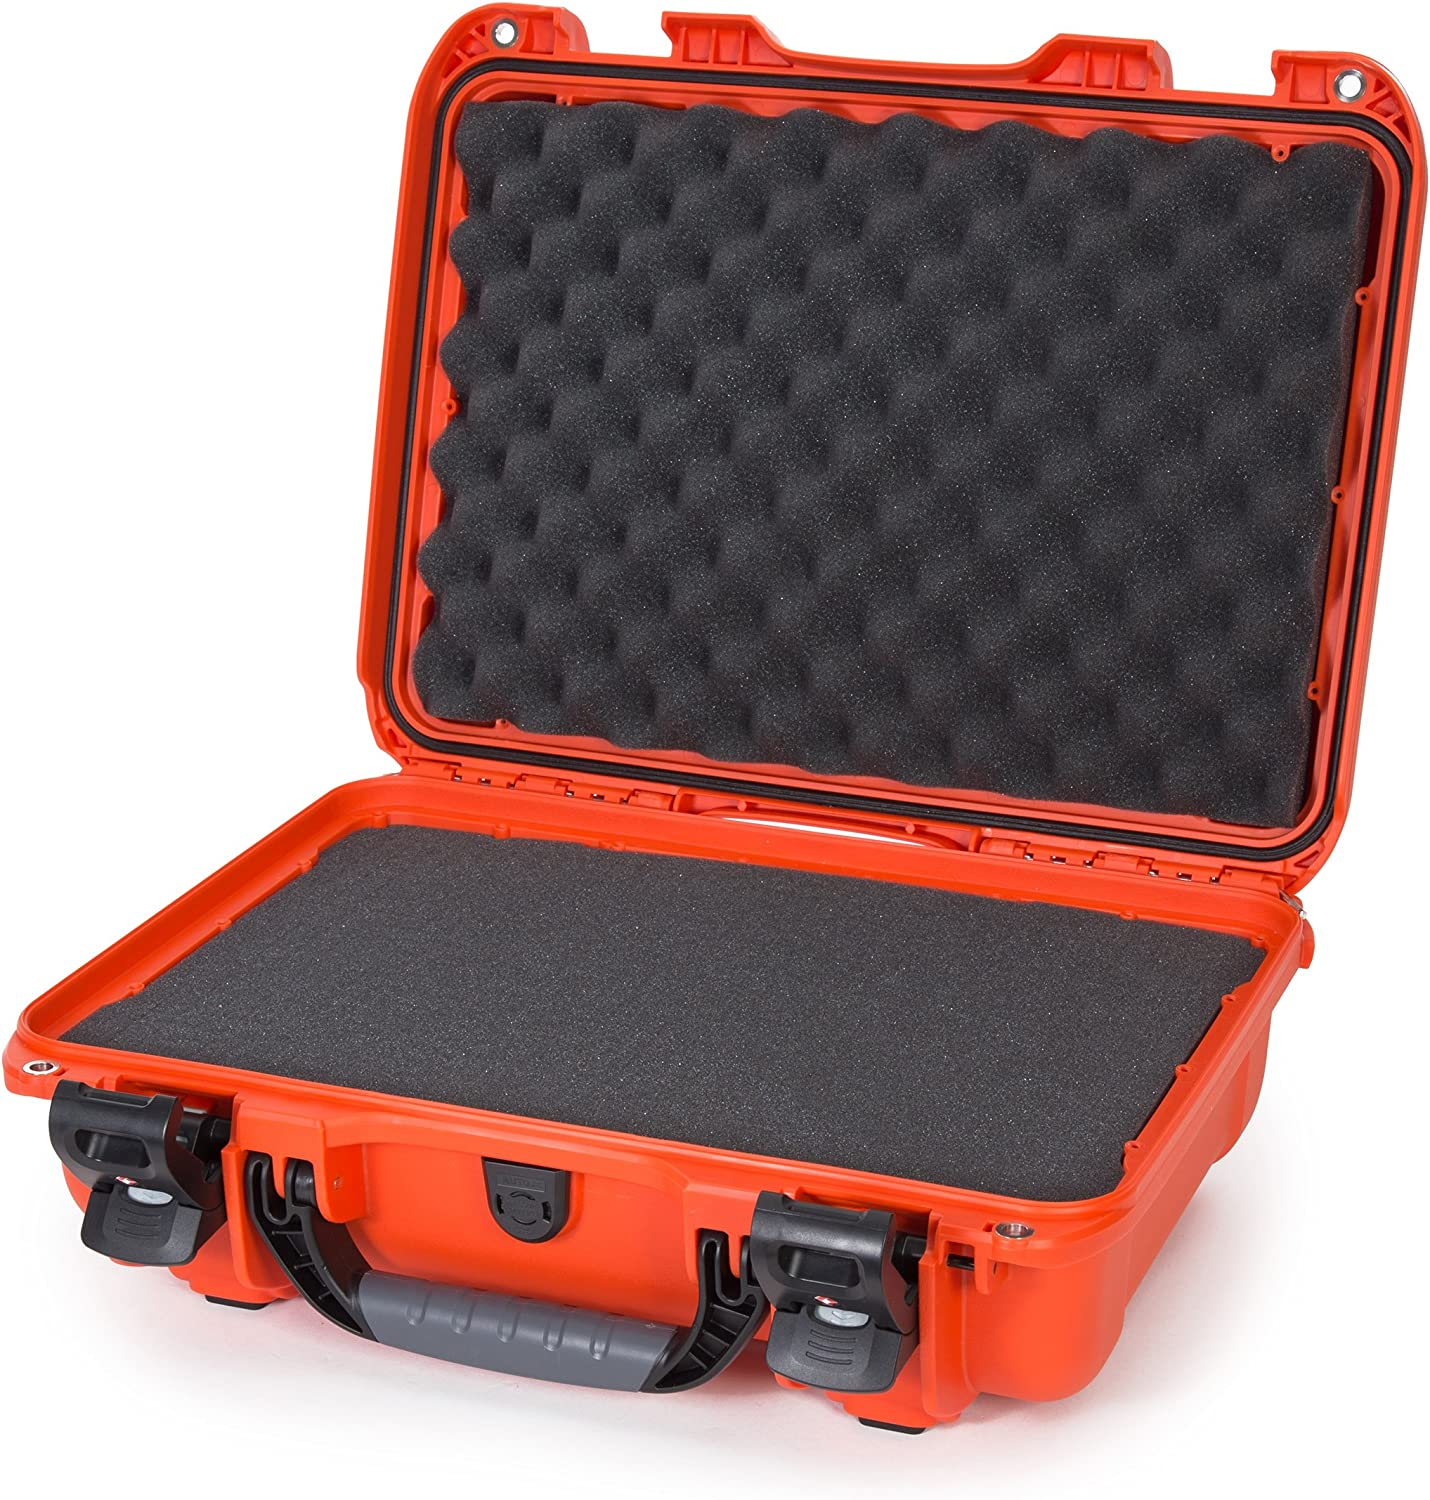 Nanuk 923 Waterproof Hard Case with Foam Insert and Incorporated TSA Approved Travel Lock Latches - Orange (923-1003)